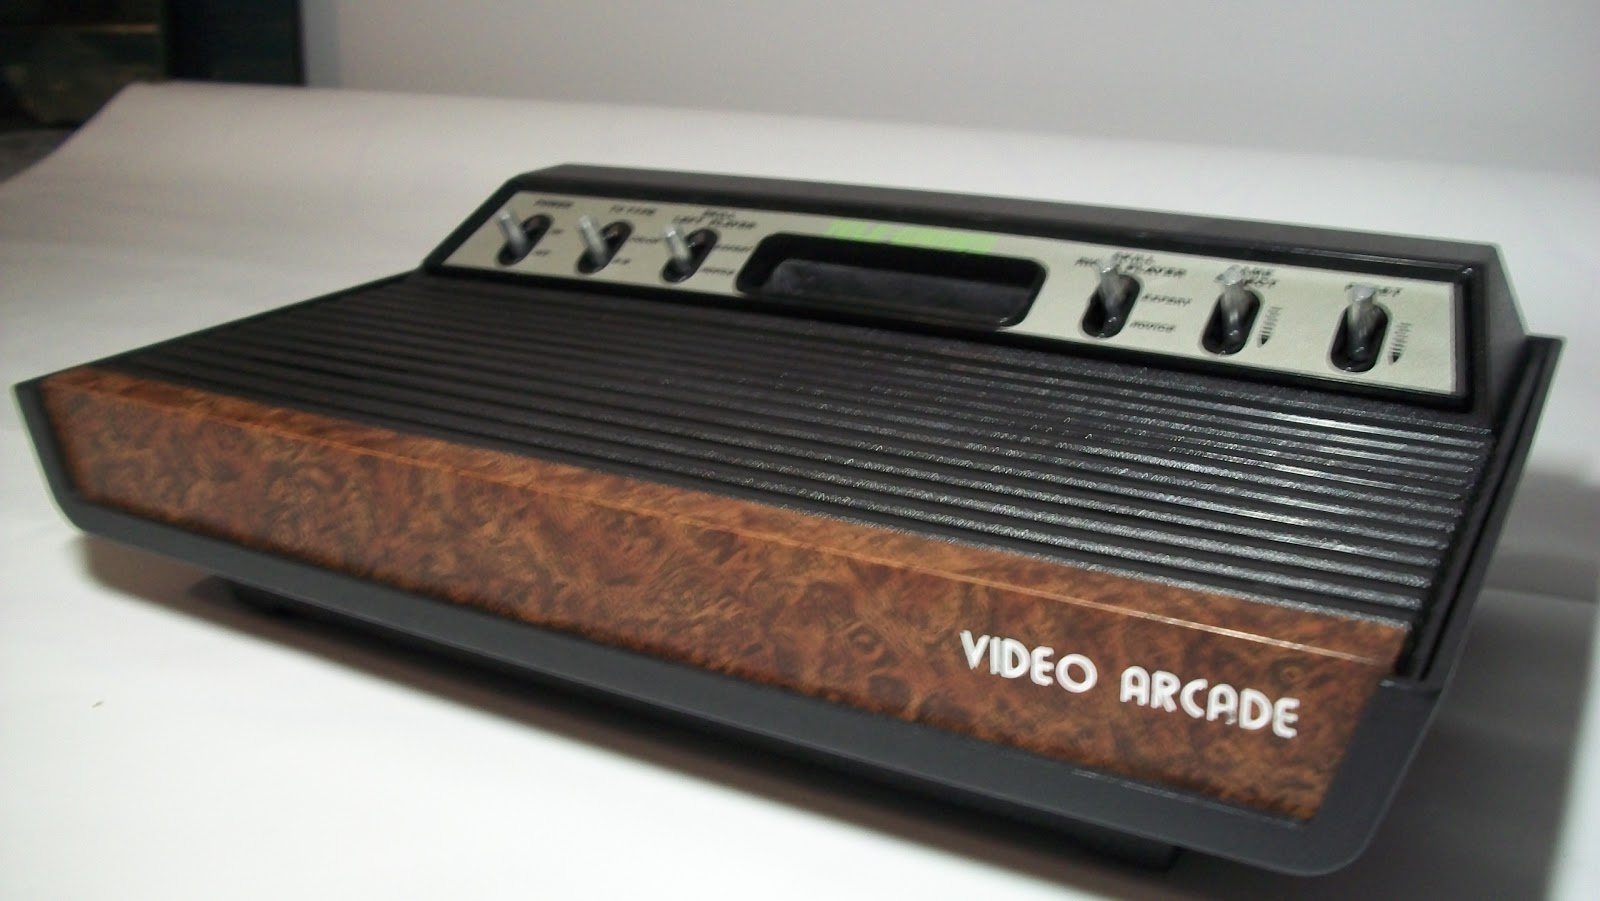 free repair guides sears tele games atari 2600 console. Black Bedroom Furniture Sets. Home Design Ideas